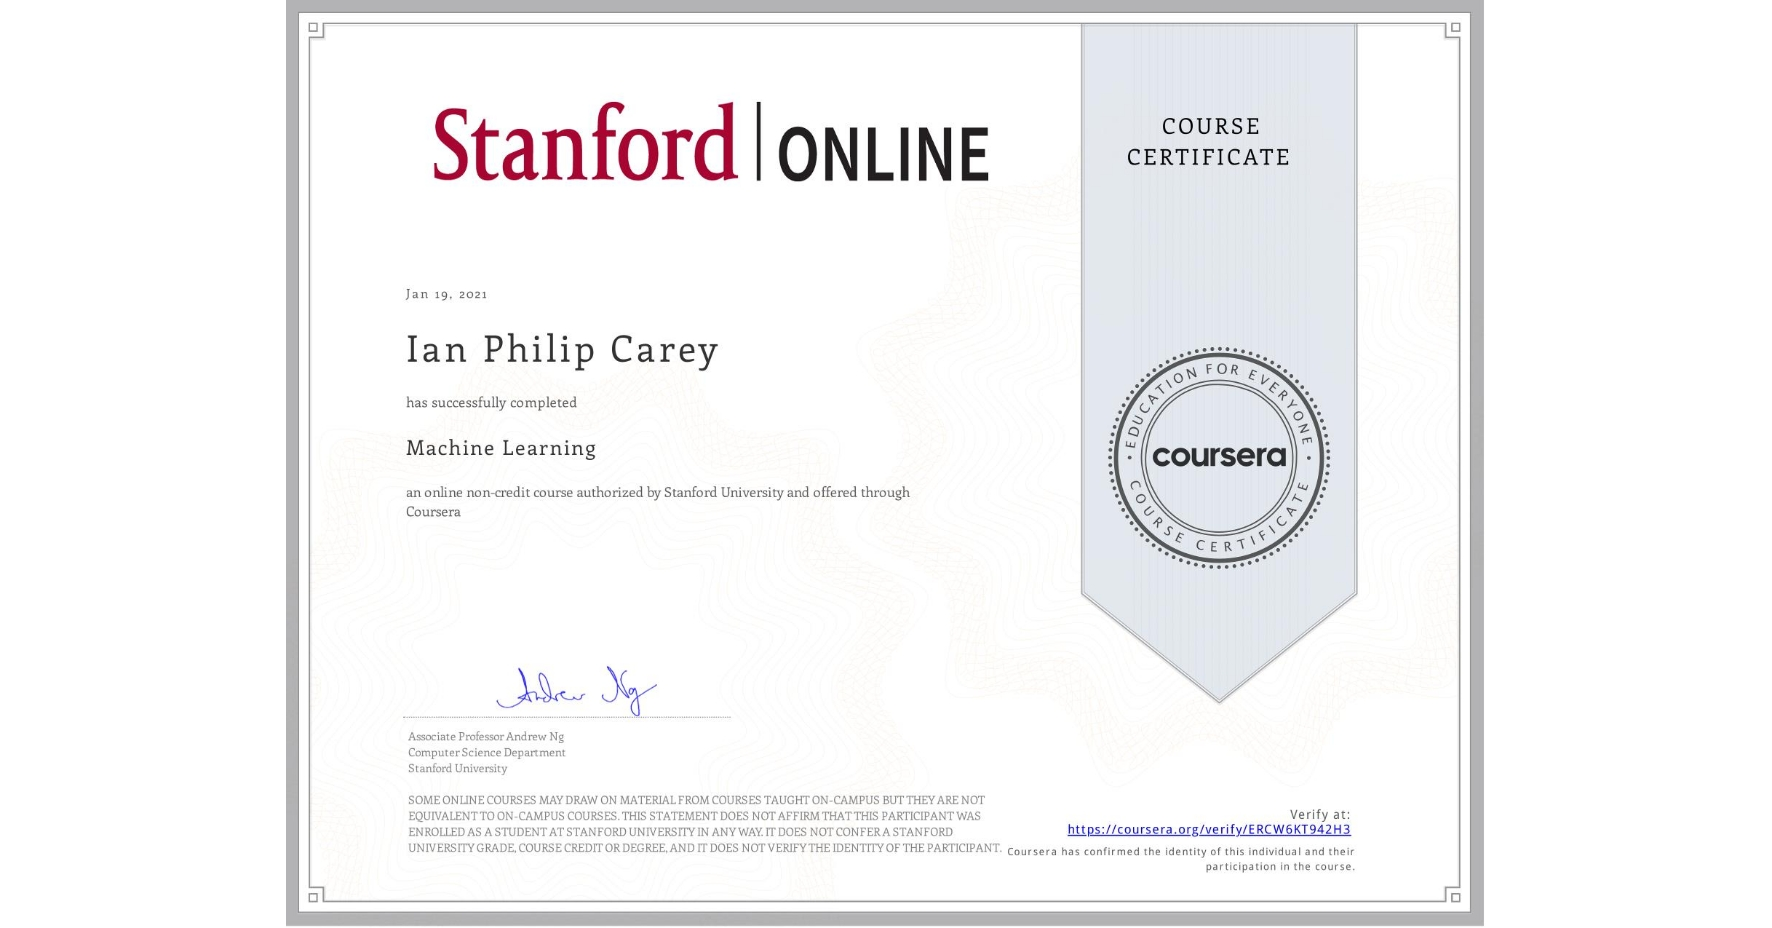 View certificate for Ian Philip Carey, Machine Learning, an online non-credit course authorized by Stanford University and offered through Coursera